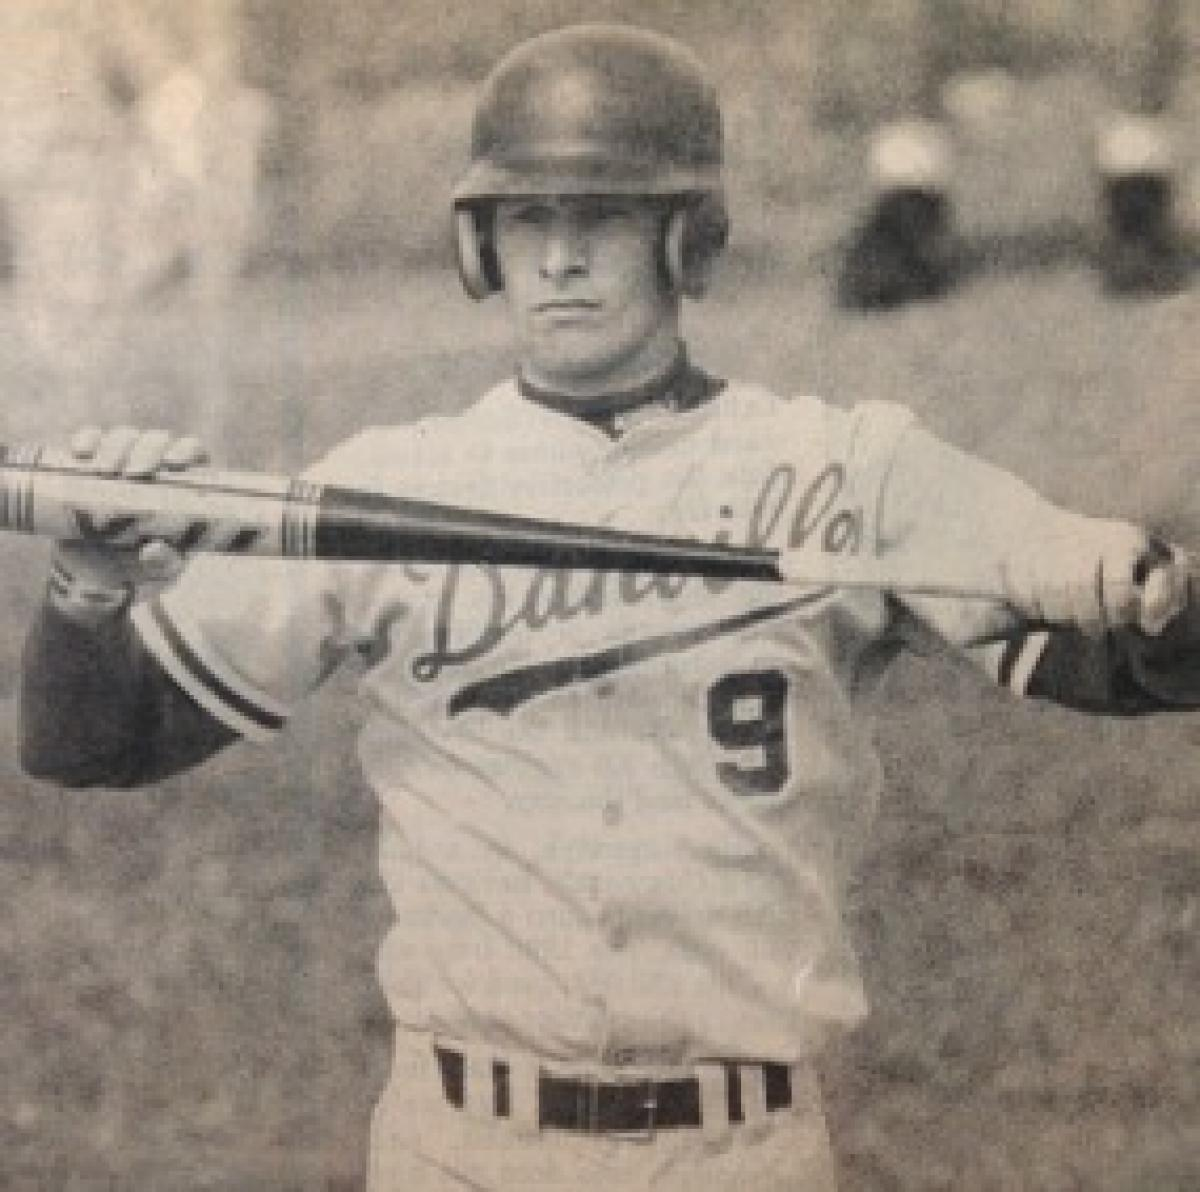 DANVILLE'S PAUL MORSE STILL TOPS IN BASEBALL RECORD BOOK